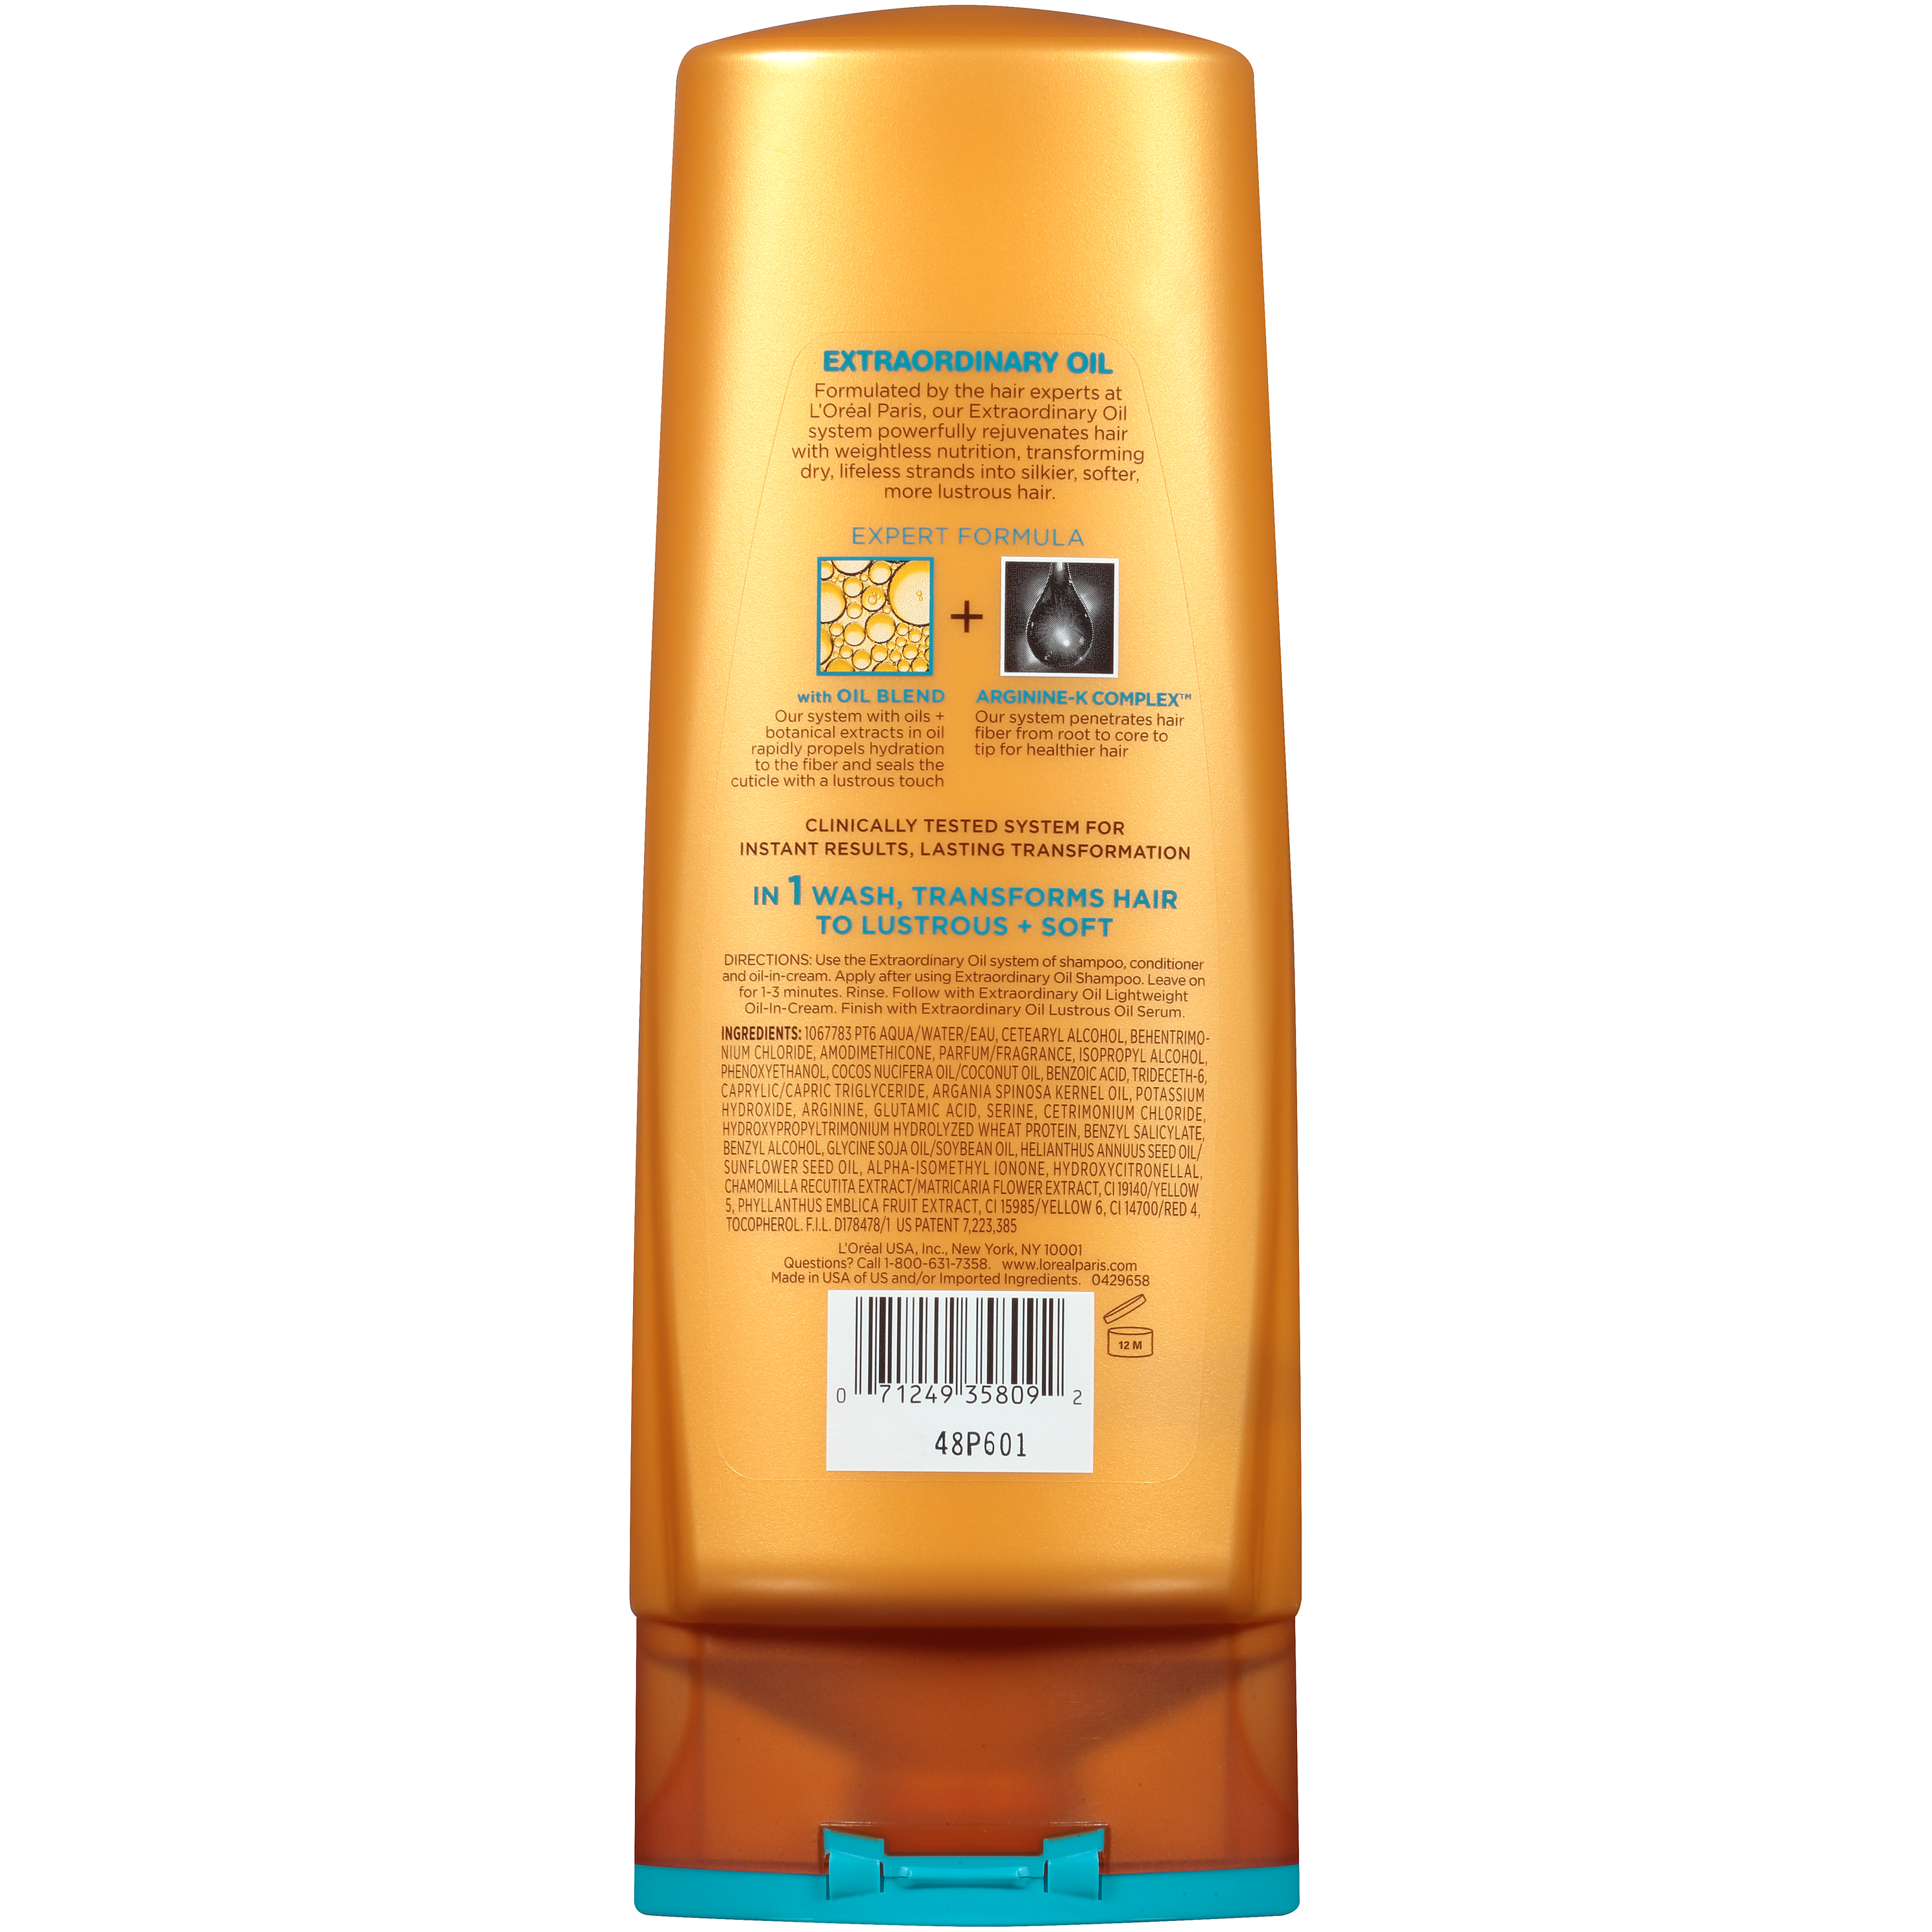 L'Oréal Paris Hair Expert Extraordinary Oil Nourishing Conditioner